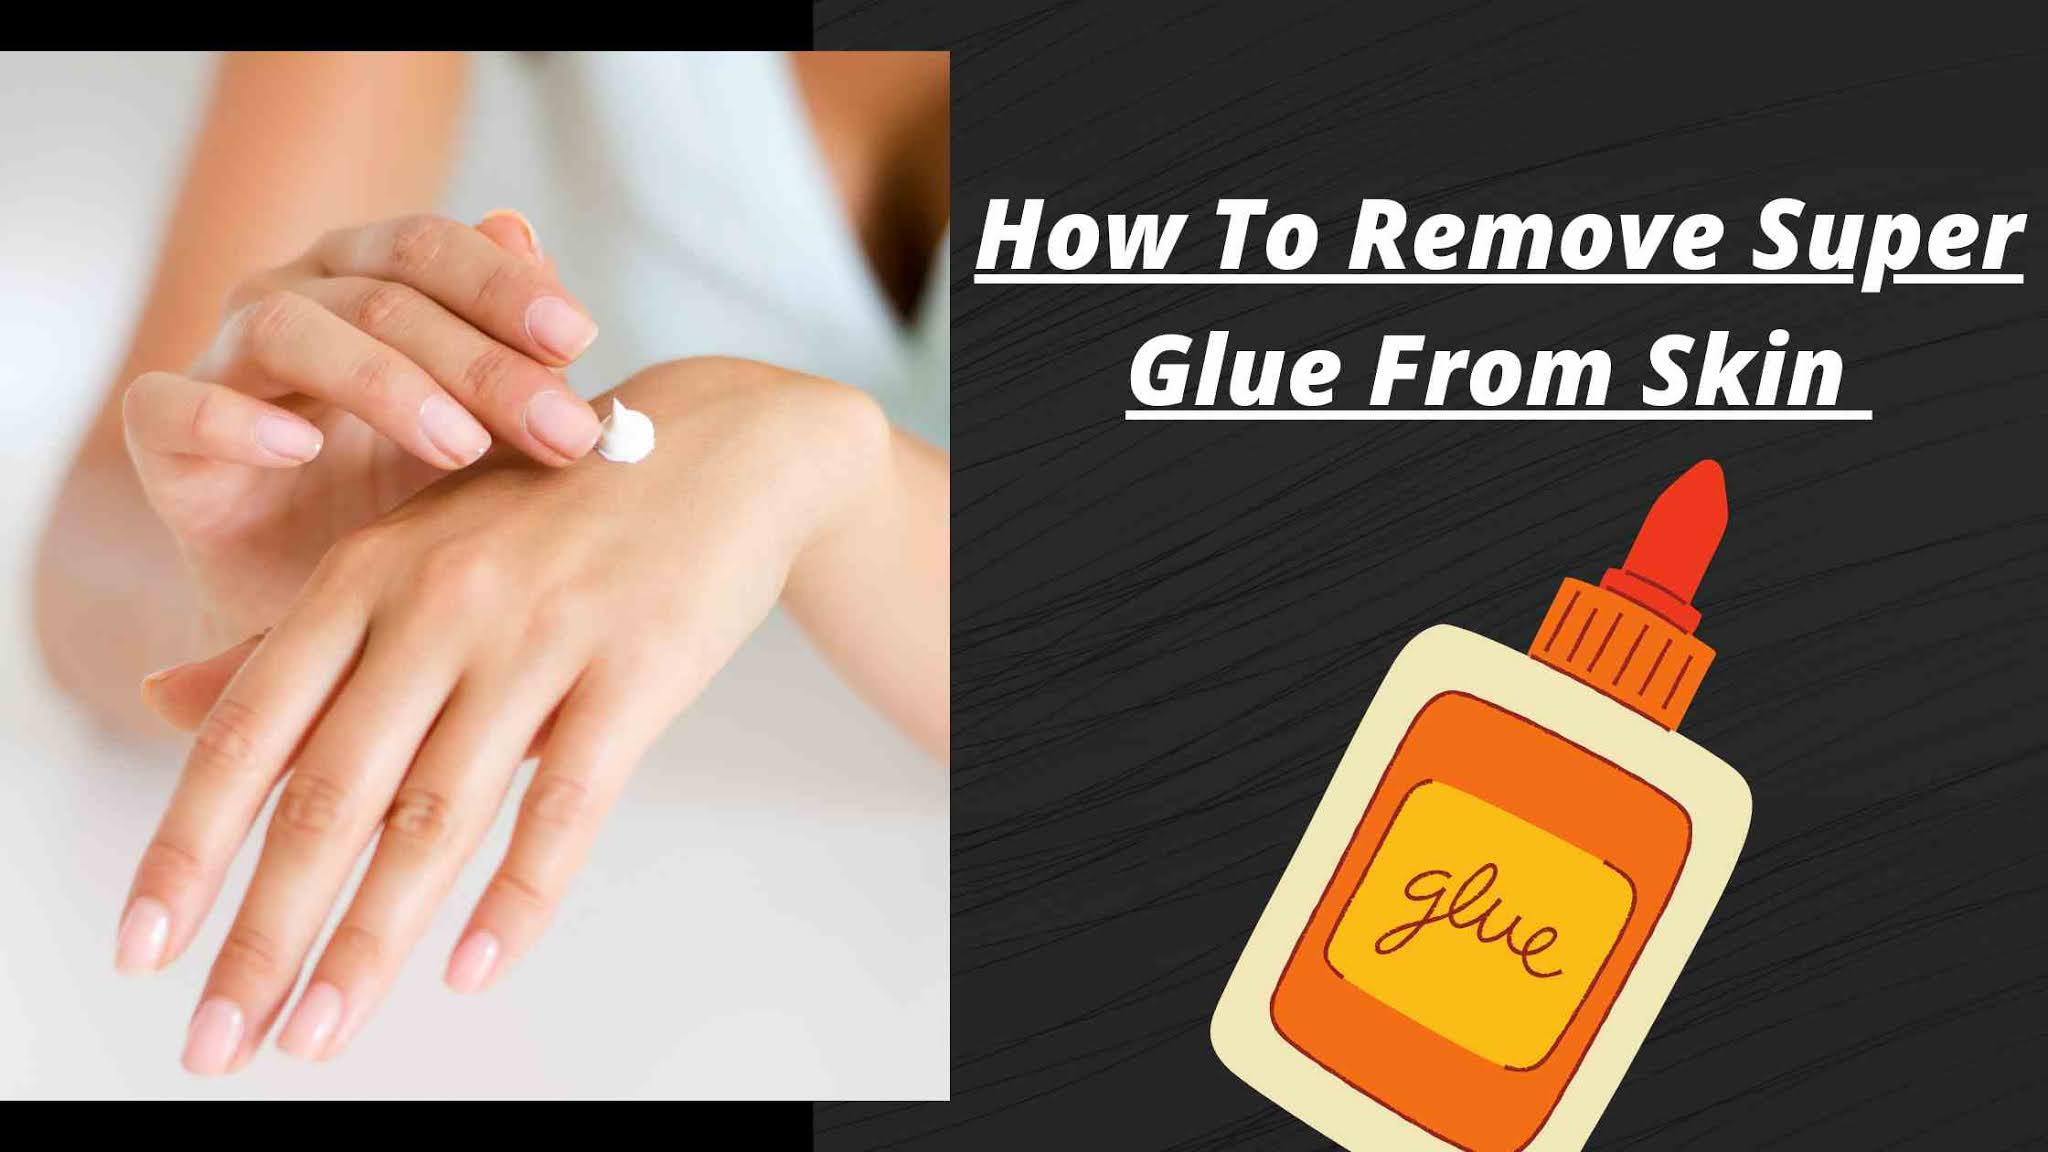 How To Remove Super Glue From Skin